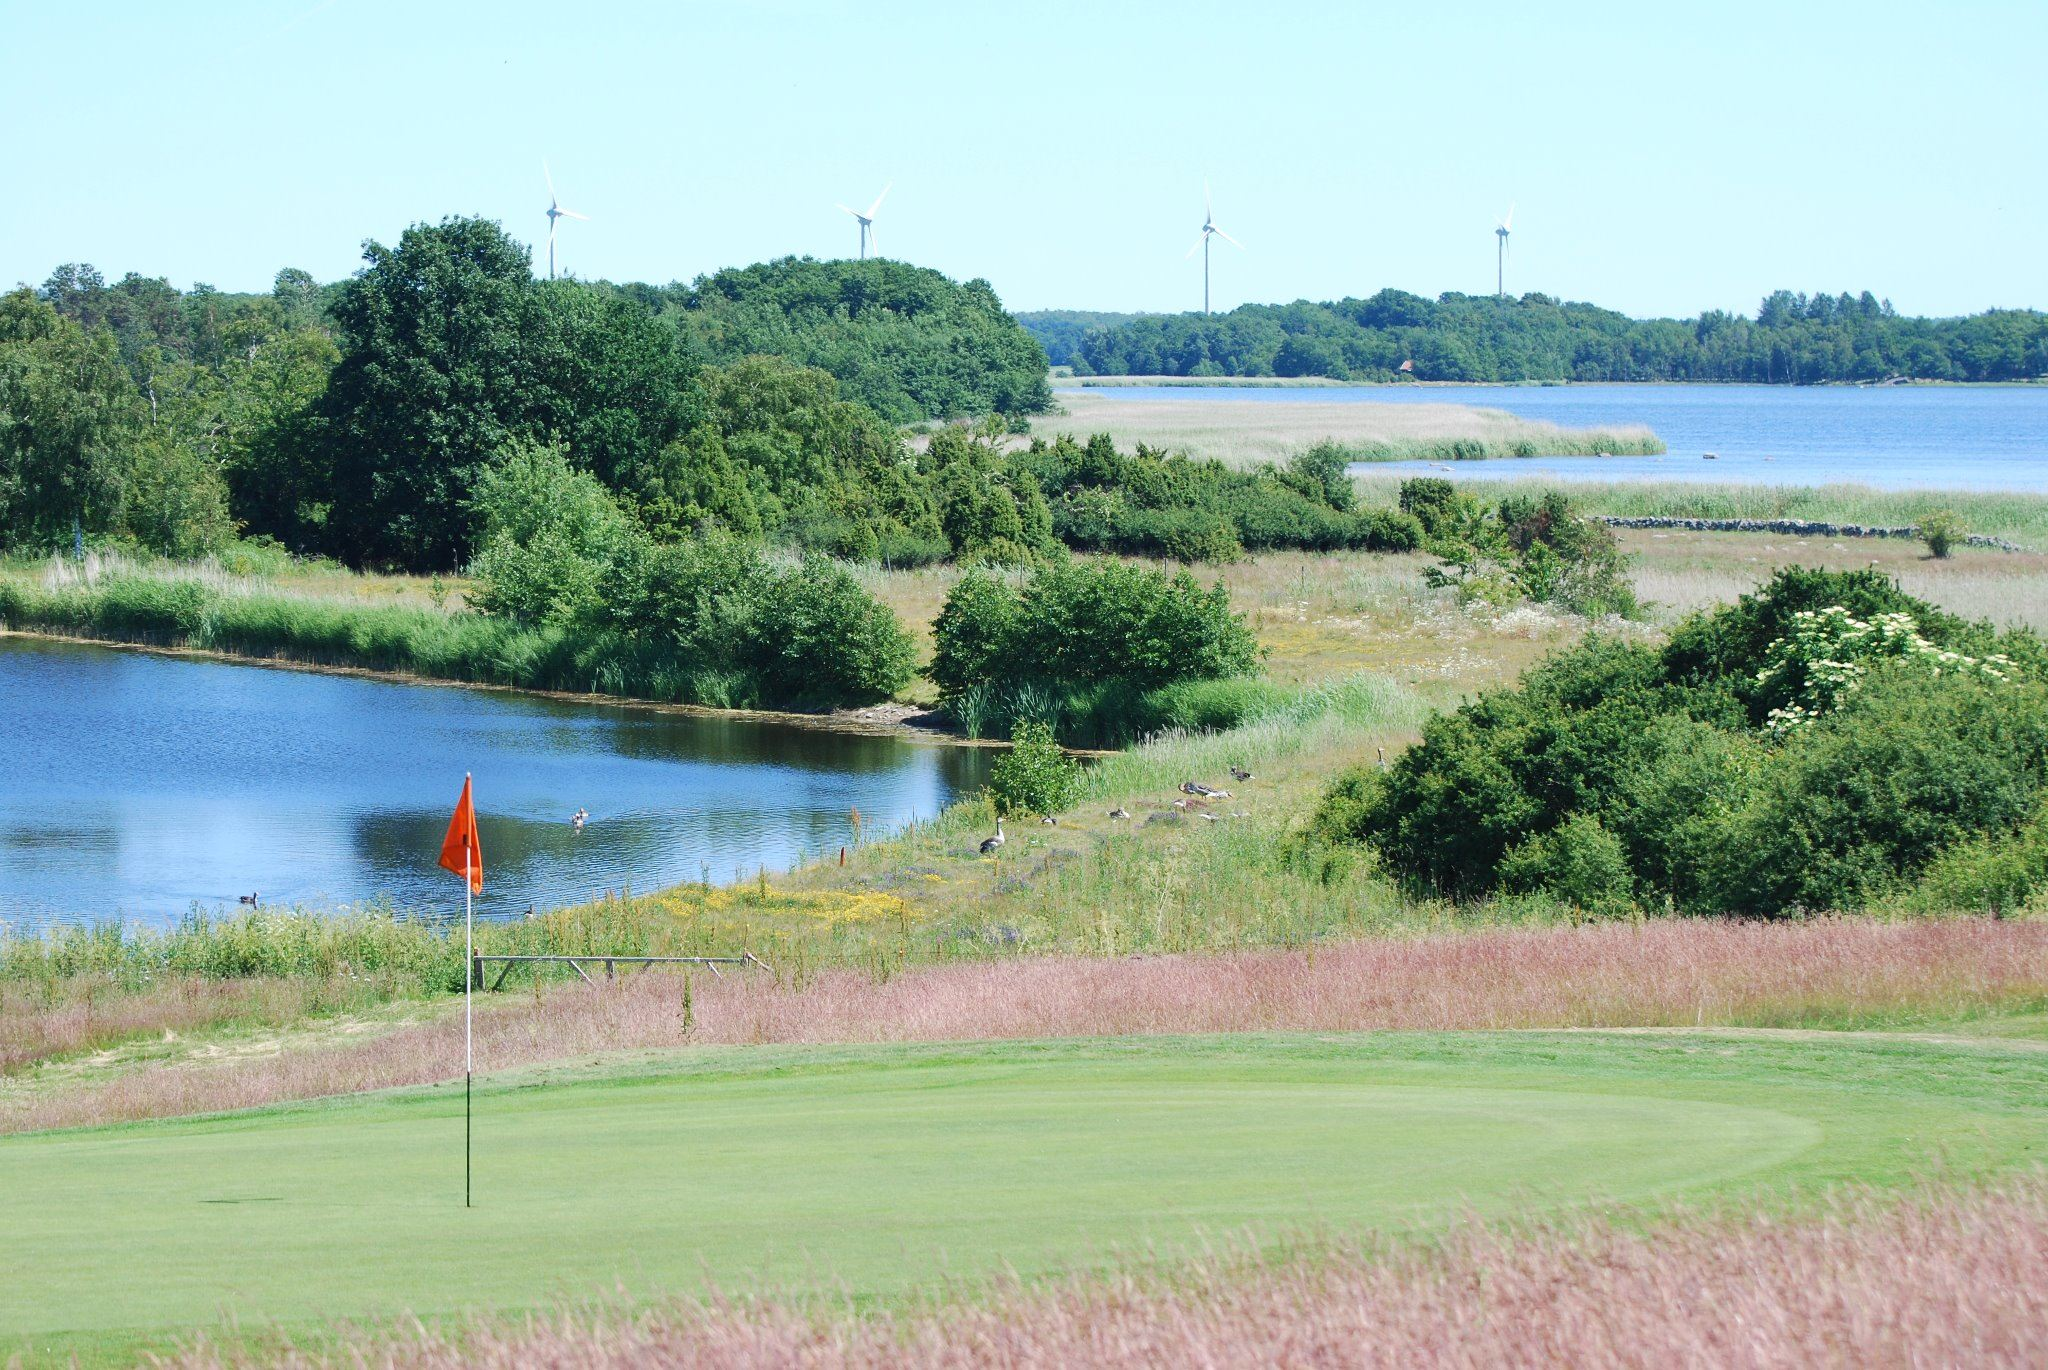 Trummenäs Open hosted by Visit Karlskrona